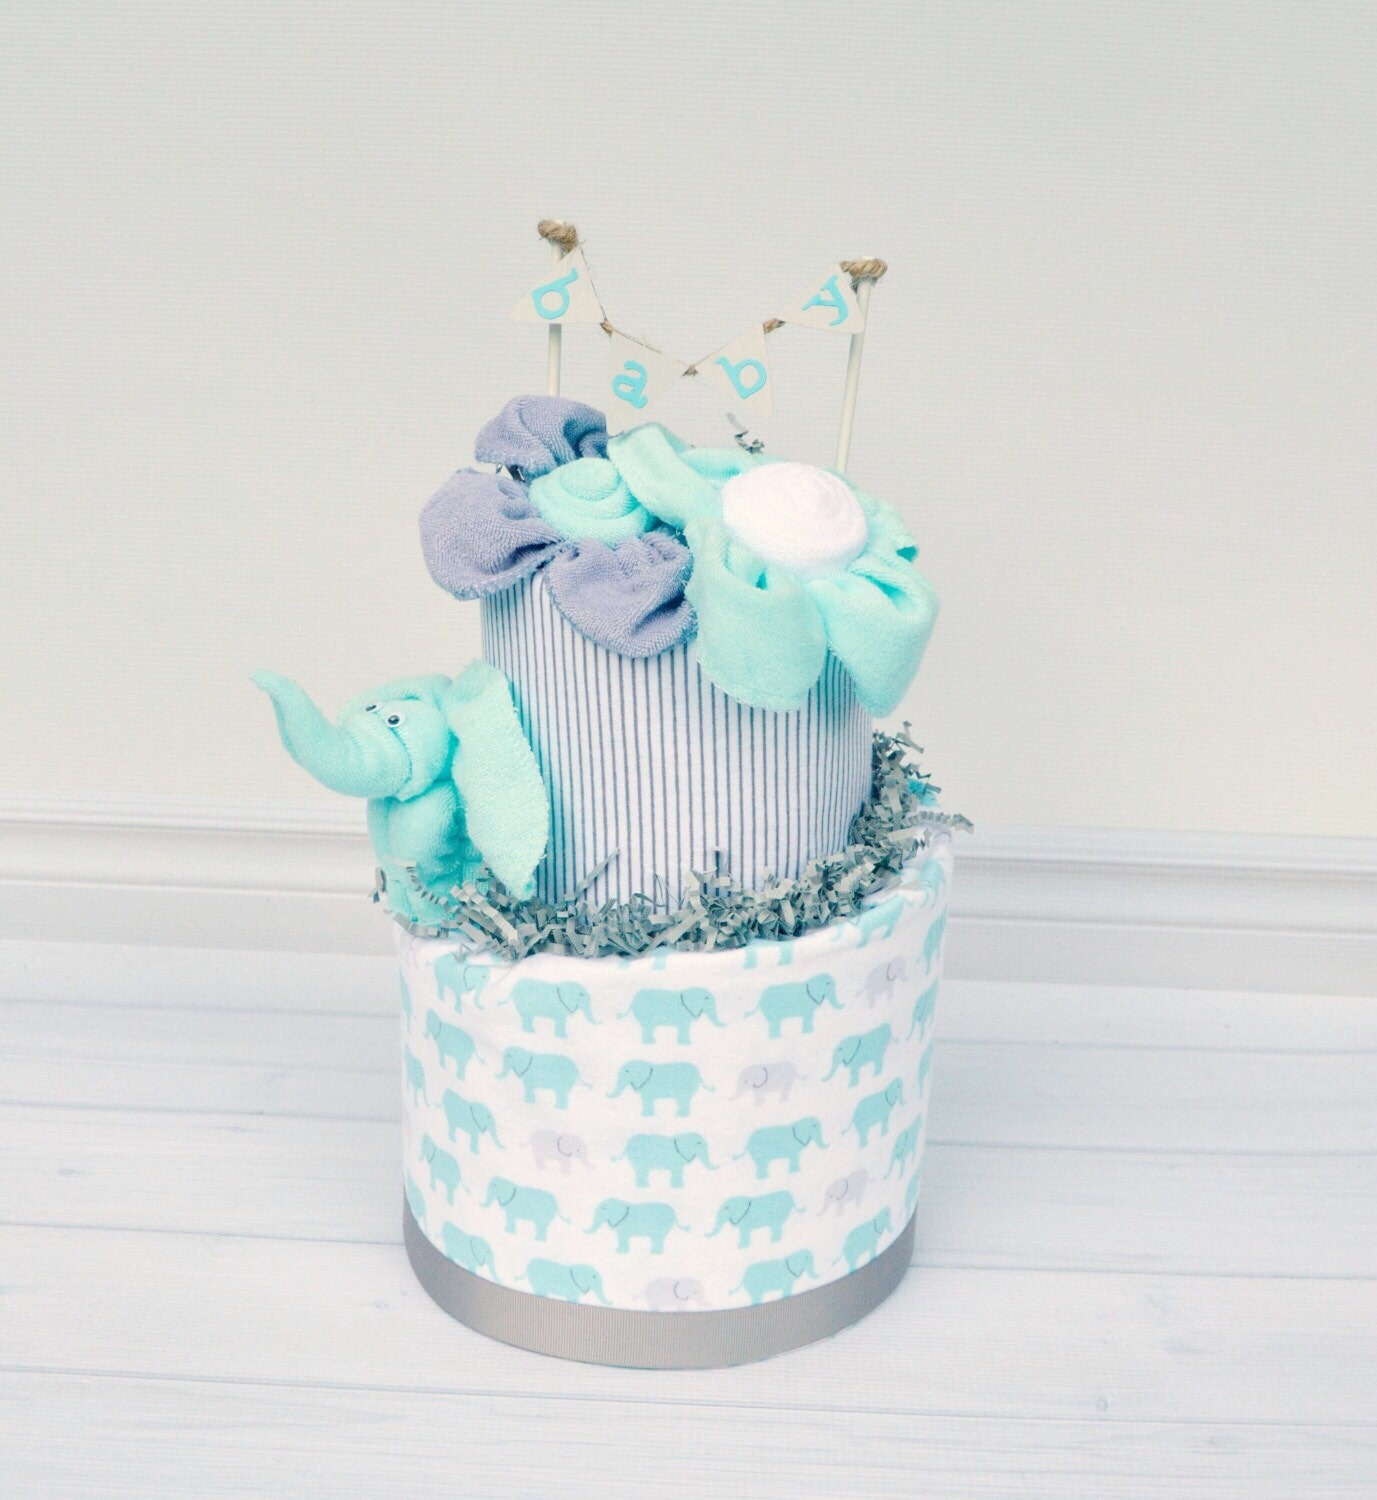 Elephant Baby Shower Decorations Elephant Diaper Cake Gray and